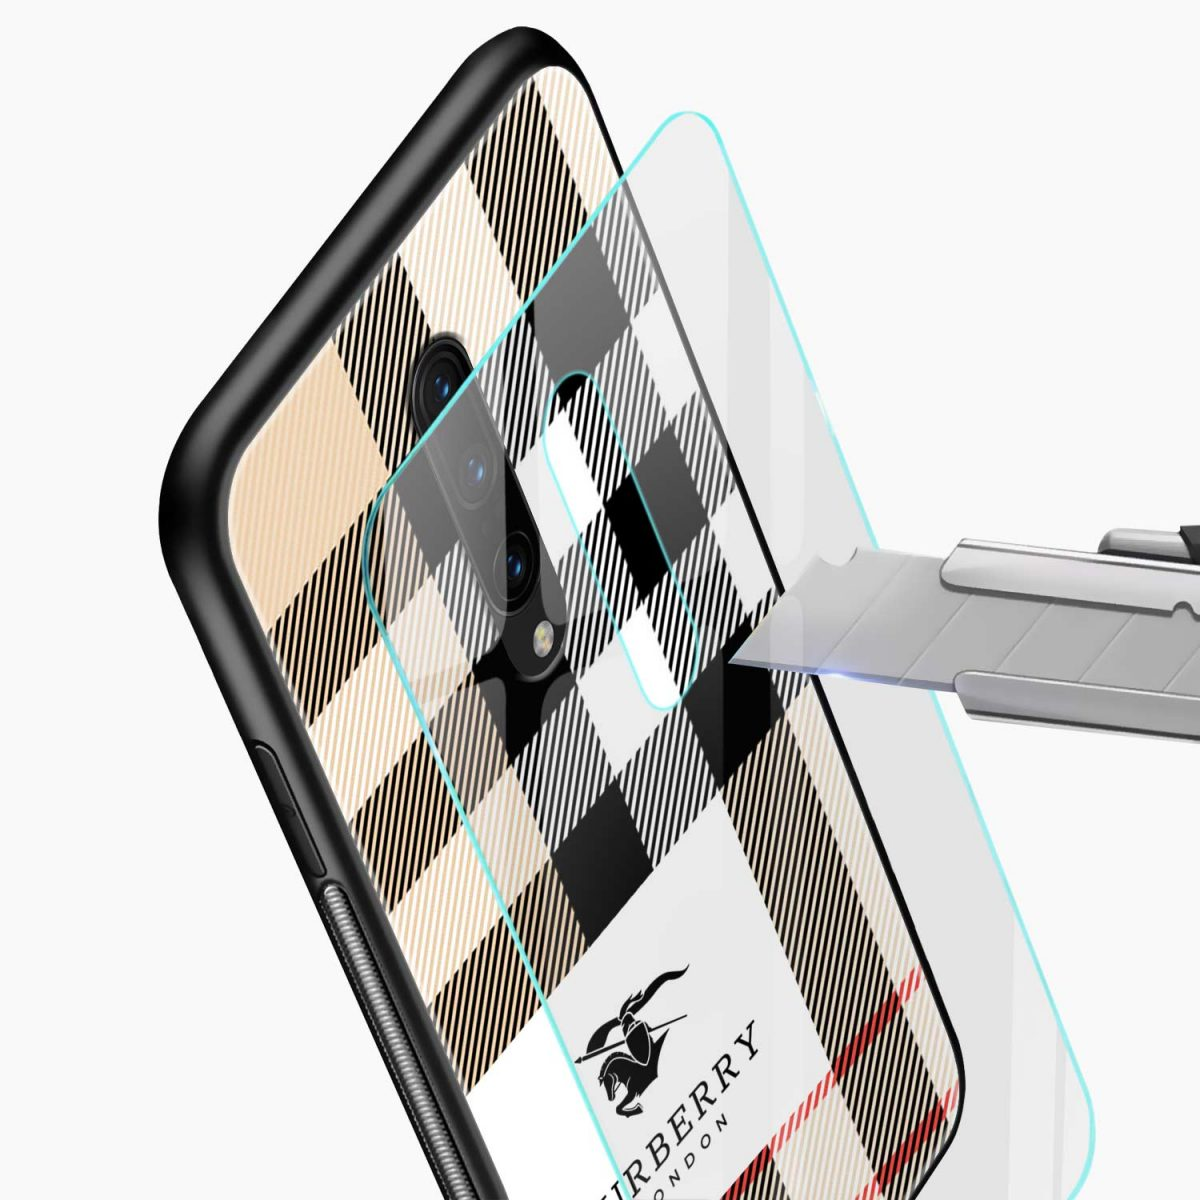 burberry cross lines pattern glass view oneplus 7 pro back cover